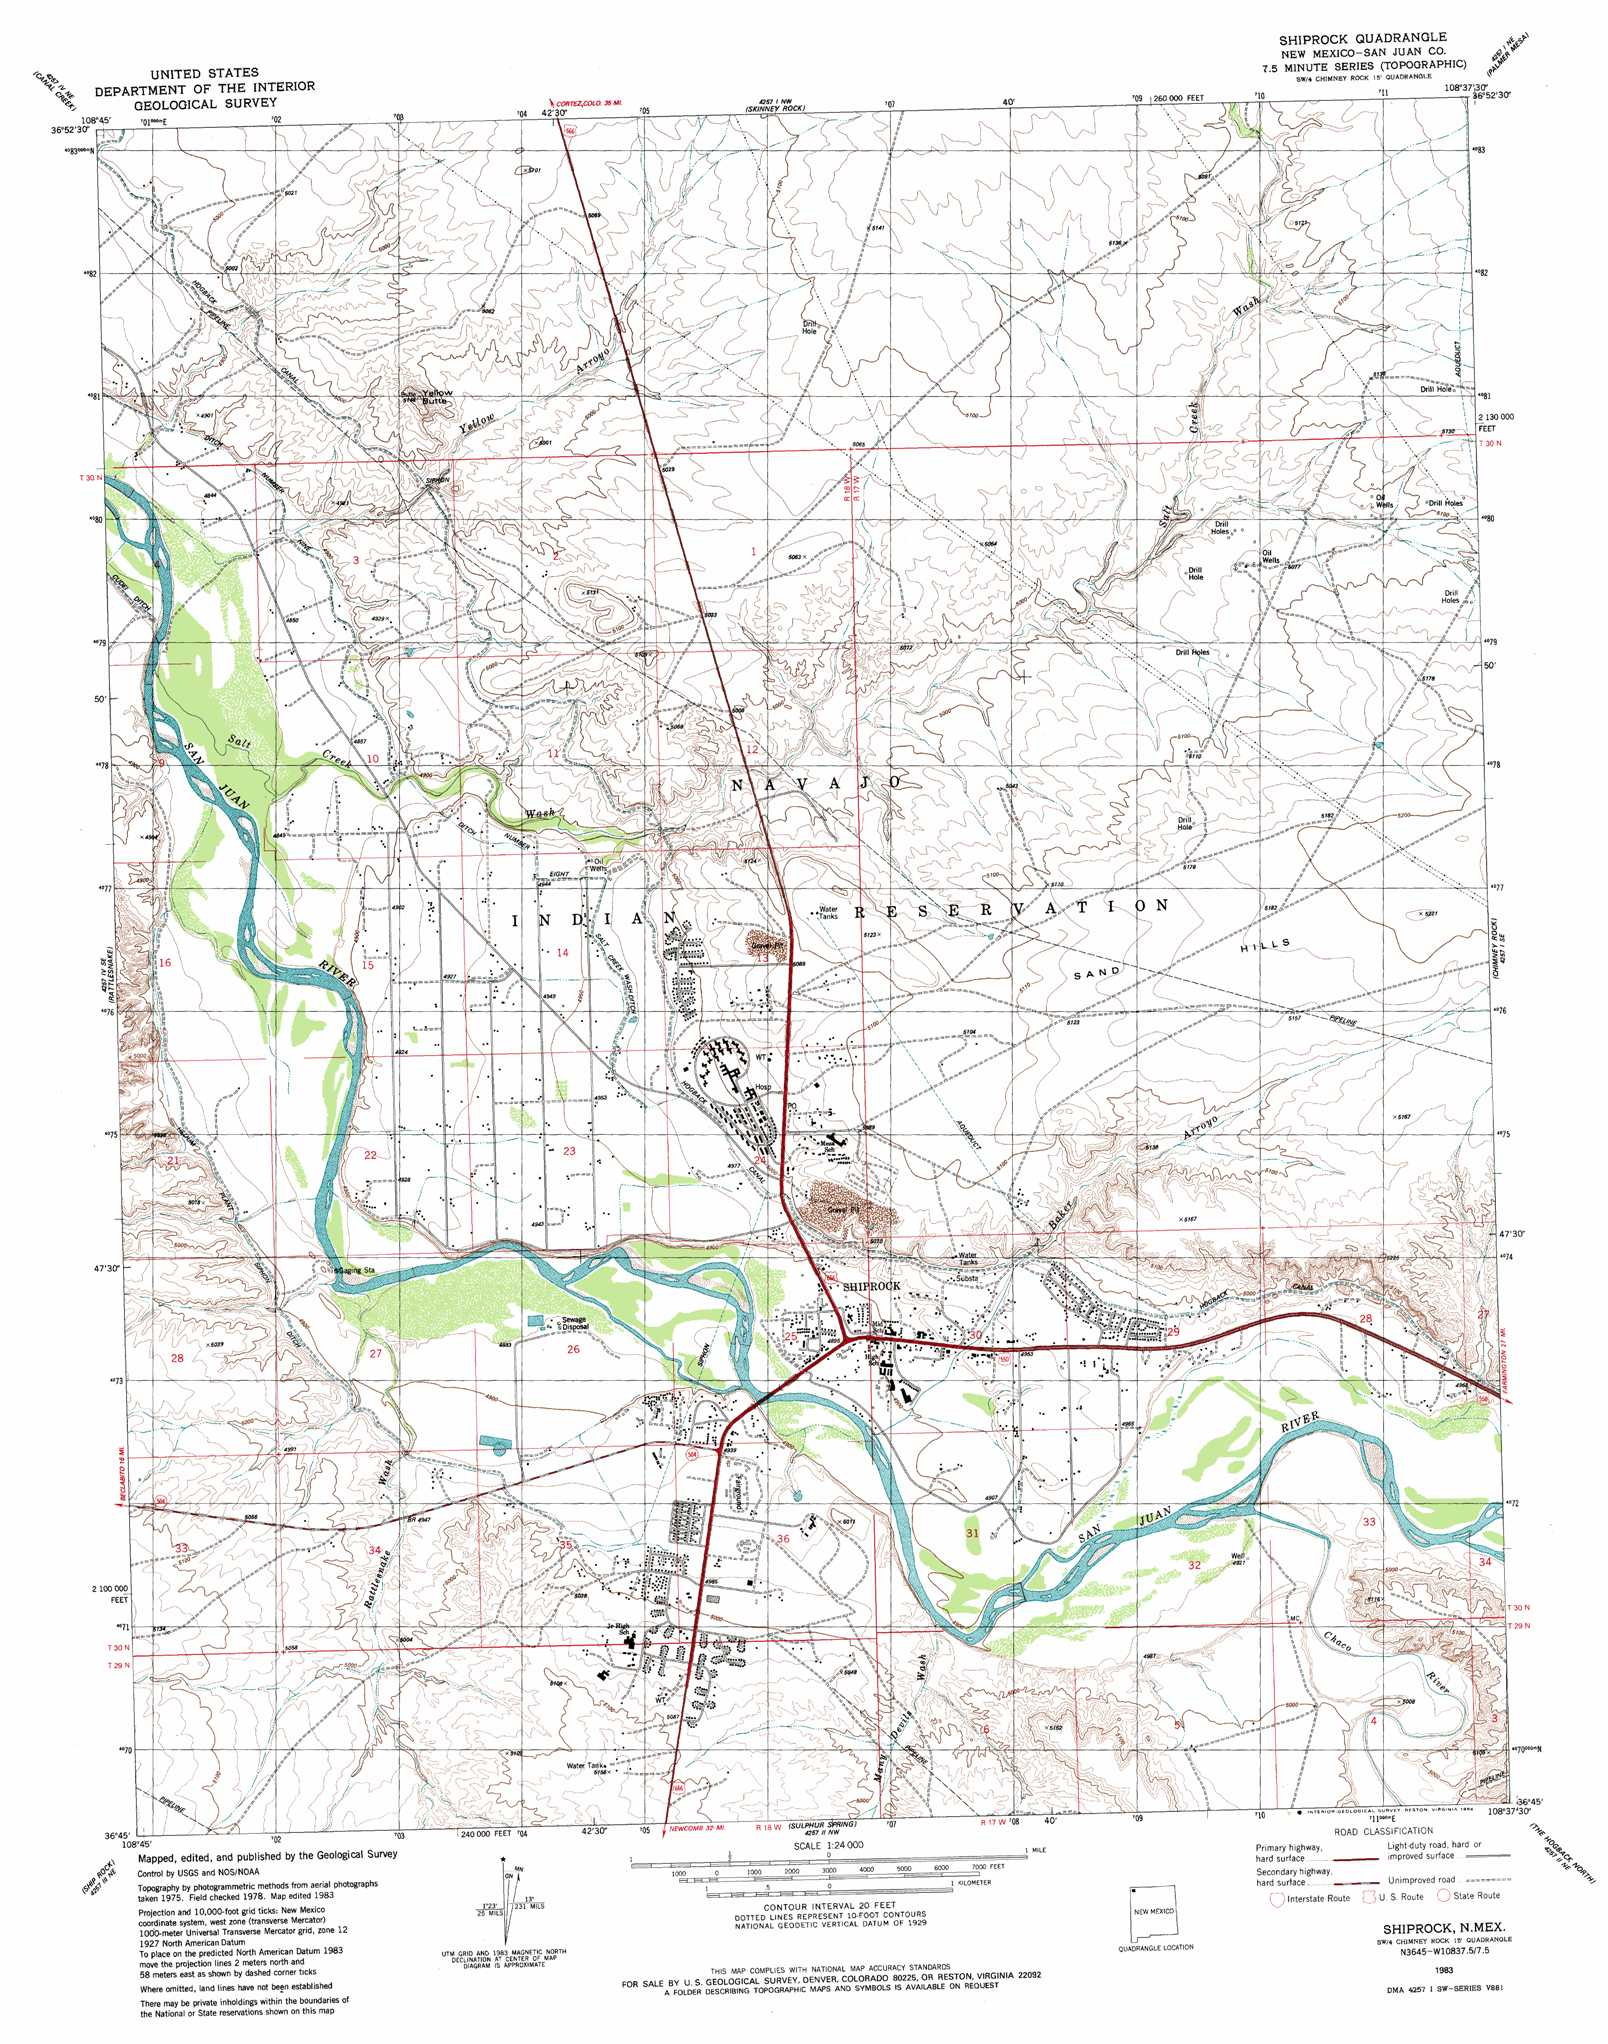 Shiprock Topographic Map NM  USGS Topo Quad 36108g6